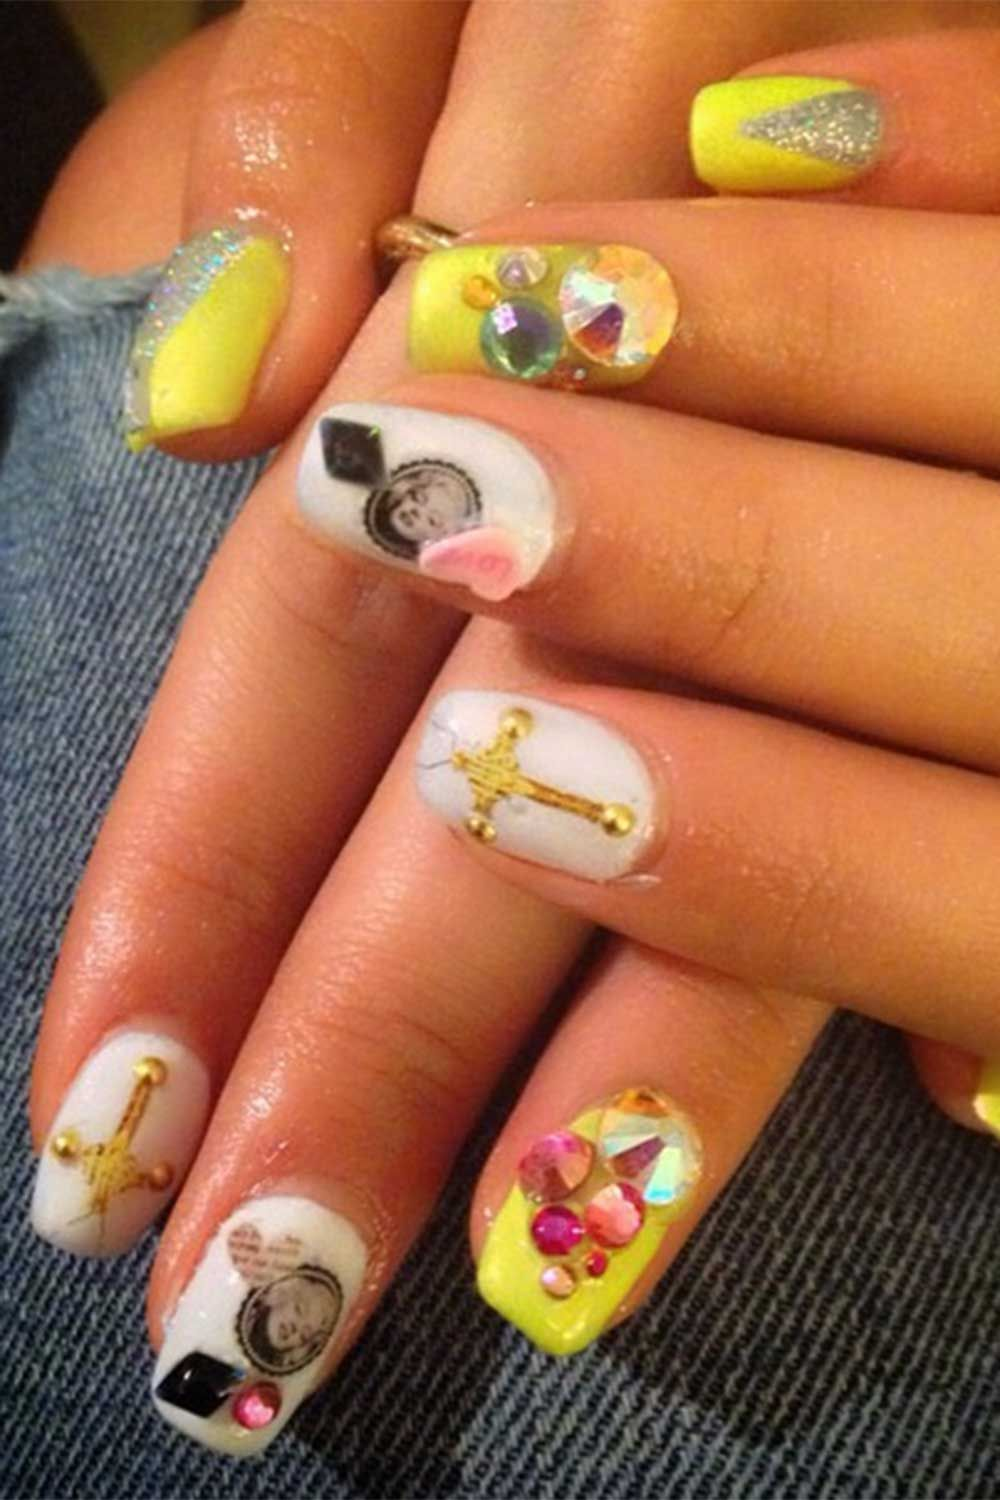 103 celebrity nail art designs to give you ALL the inspo...